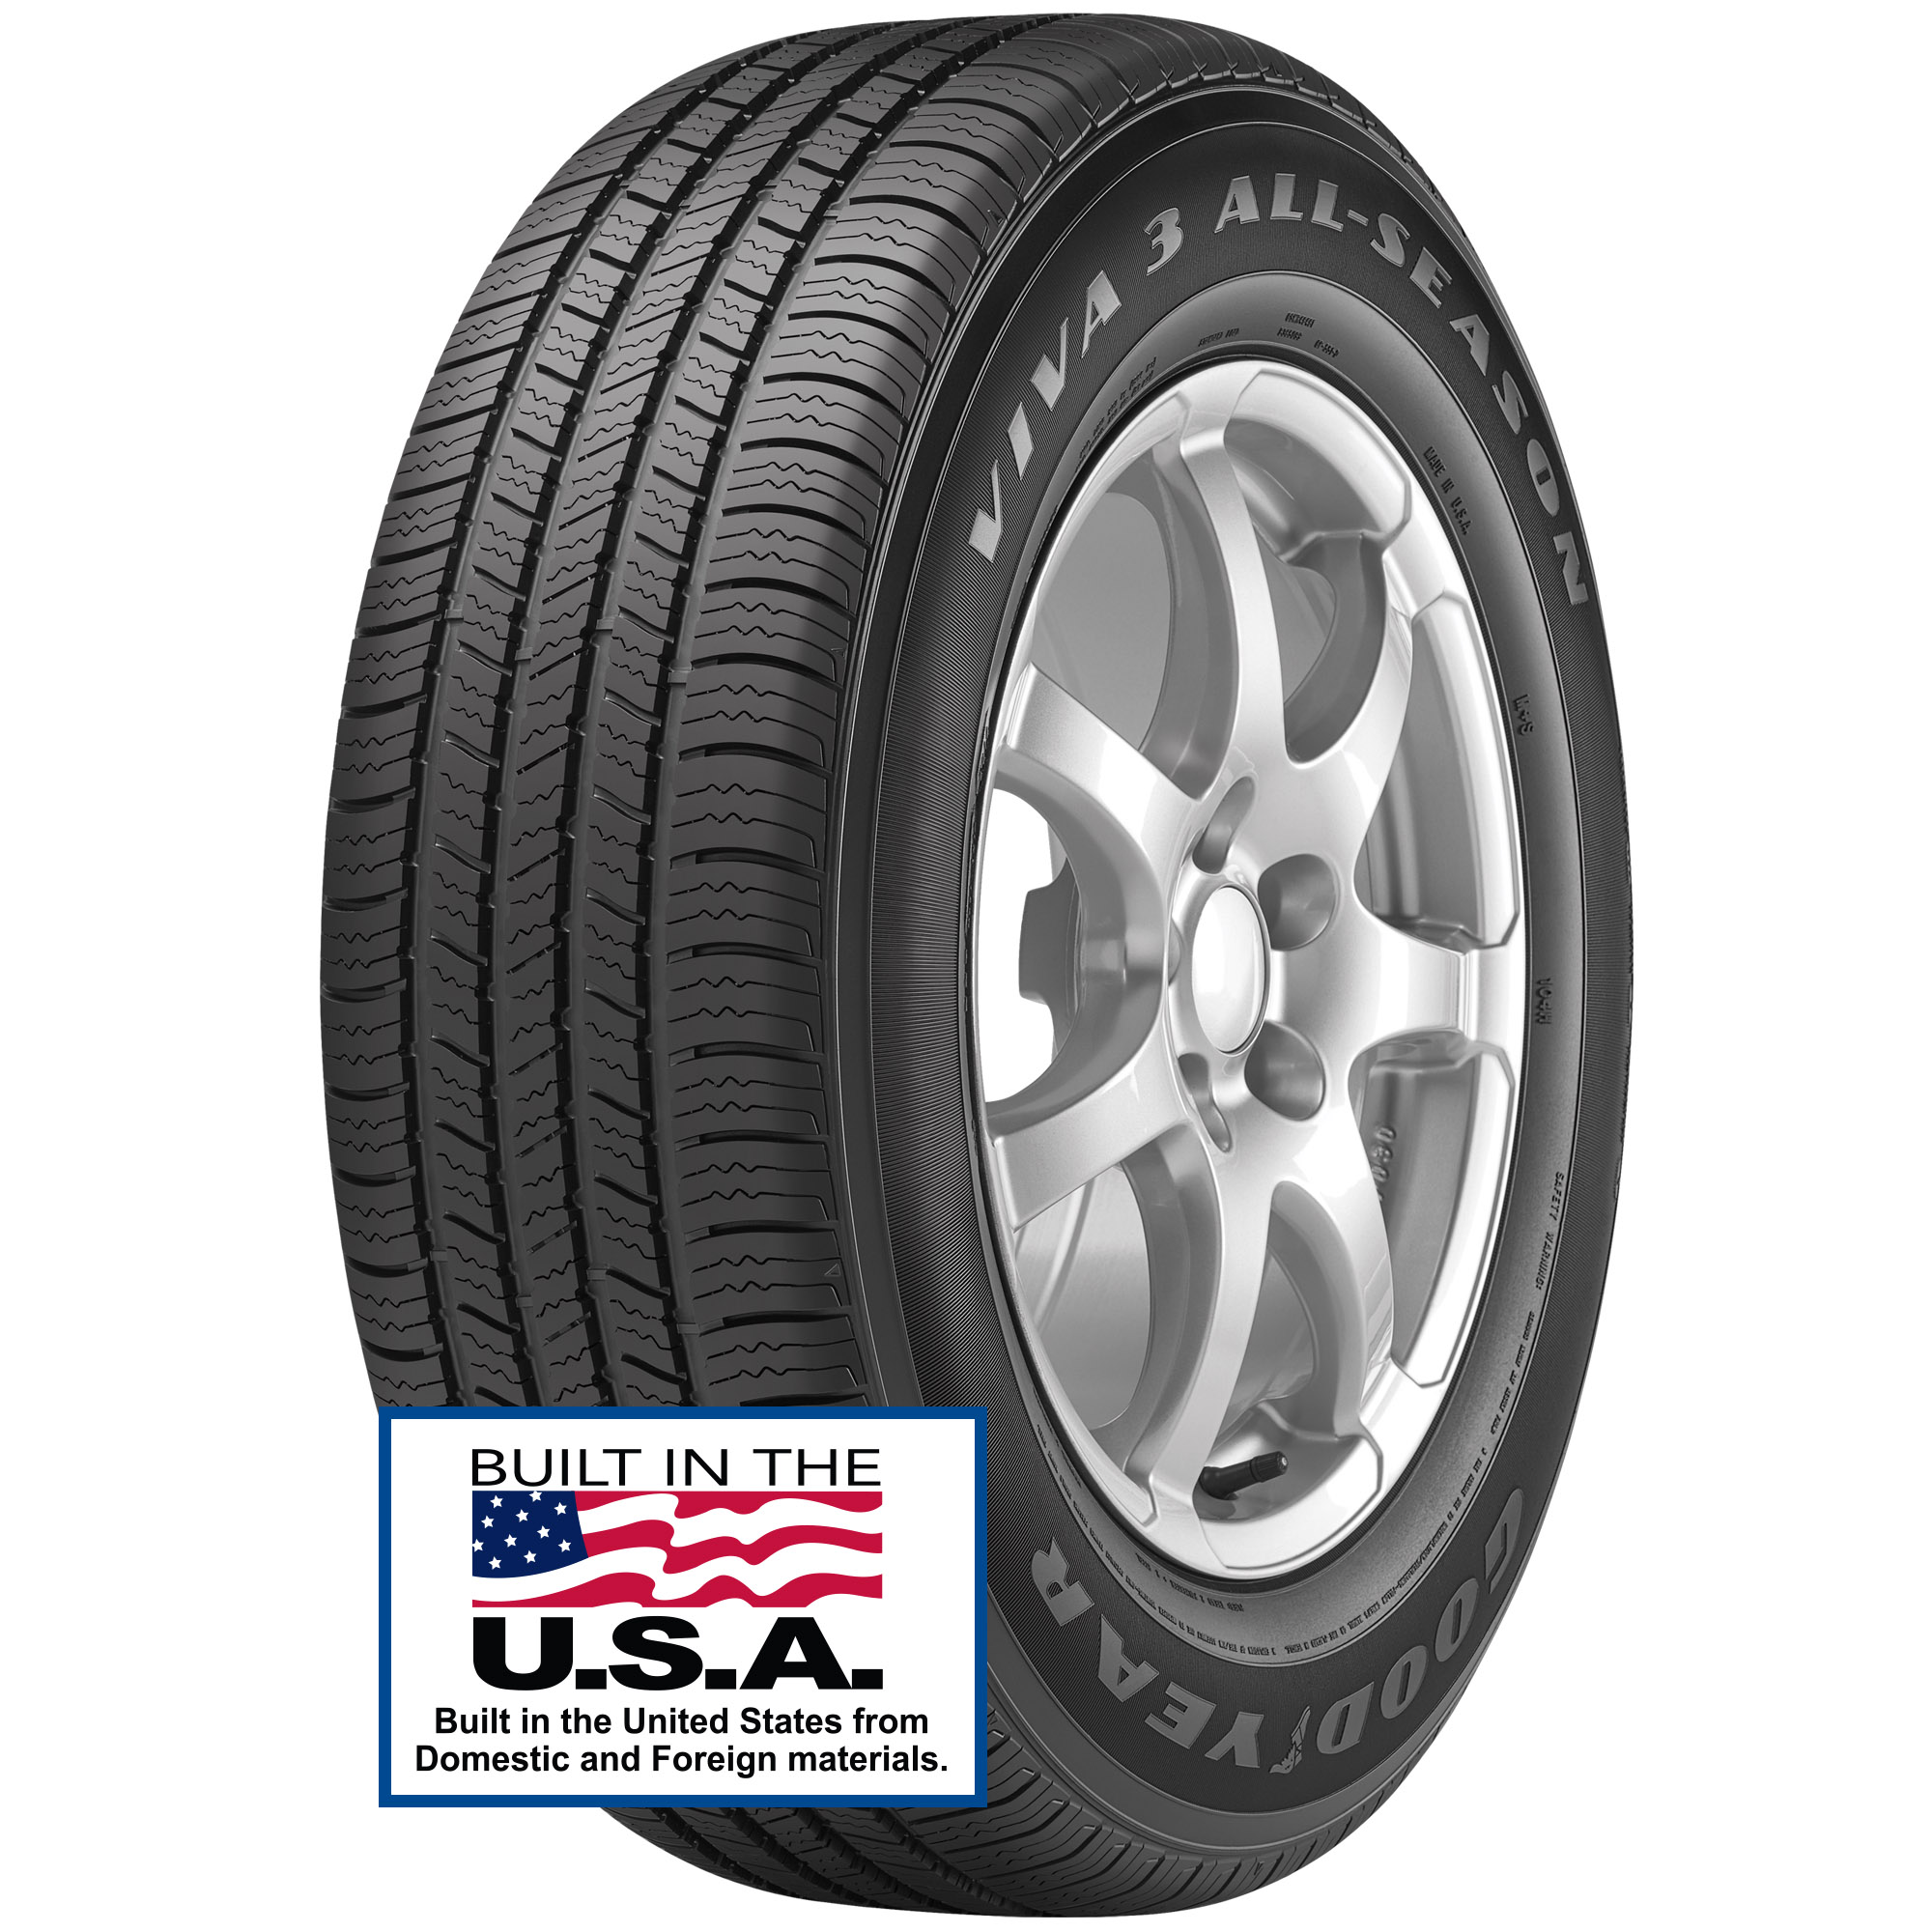 Goodyear Viva 3 All-Season 205/70R15 96T